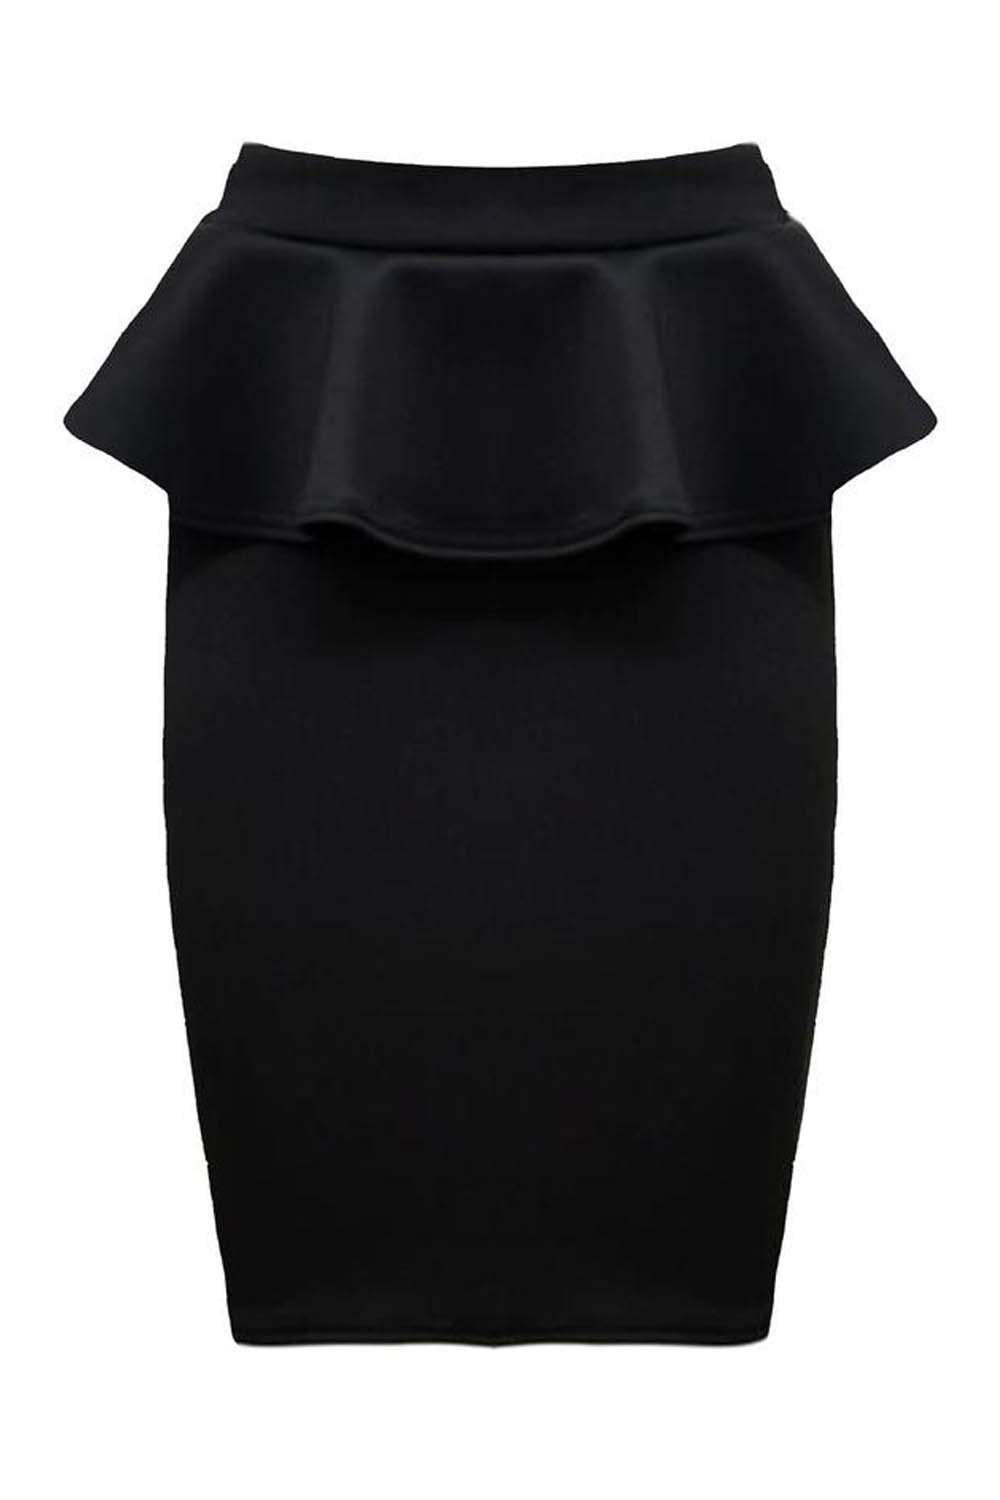 Black High Waisted Peplum Frill Midi Pencil Skirt - bejealous-com